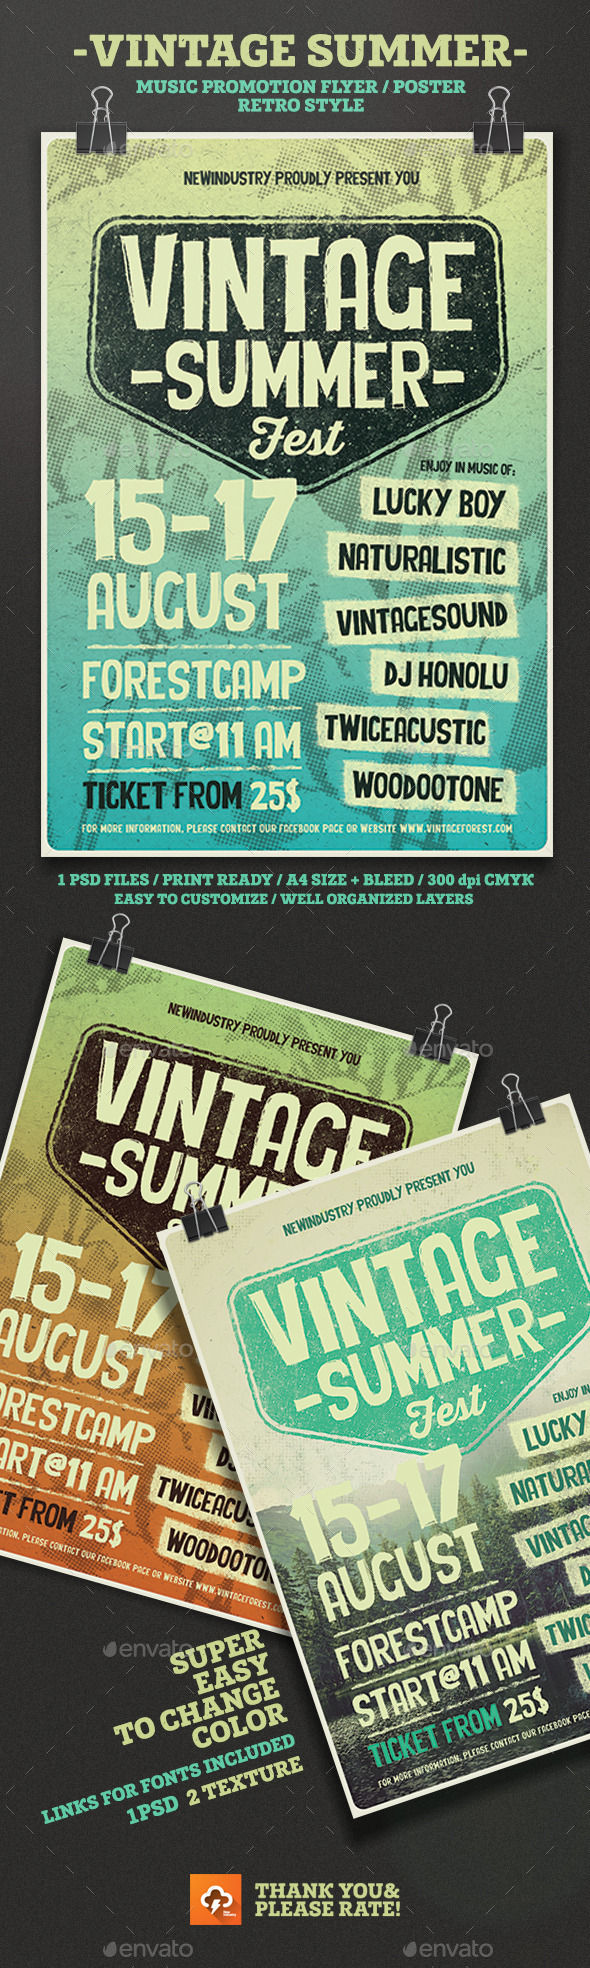 Vintage Summer Fest Poster/Flyer - Events Flyers